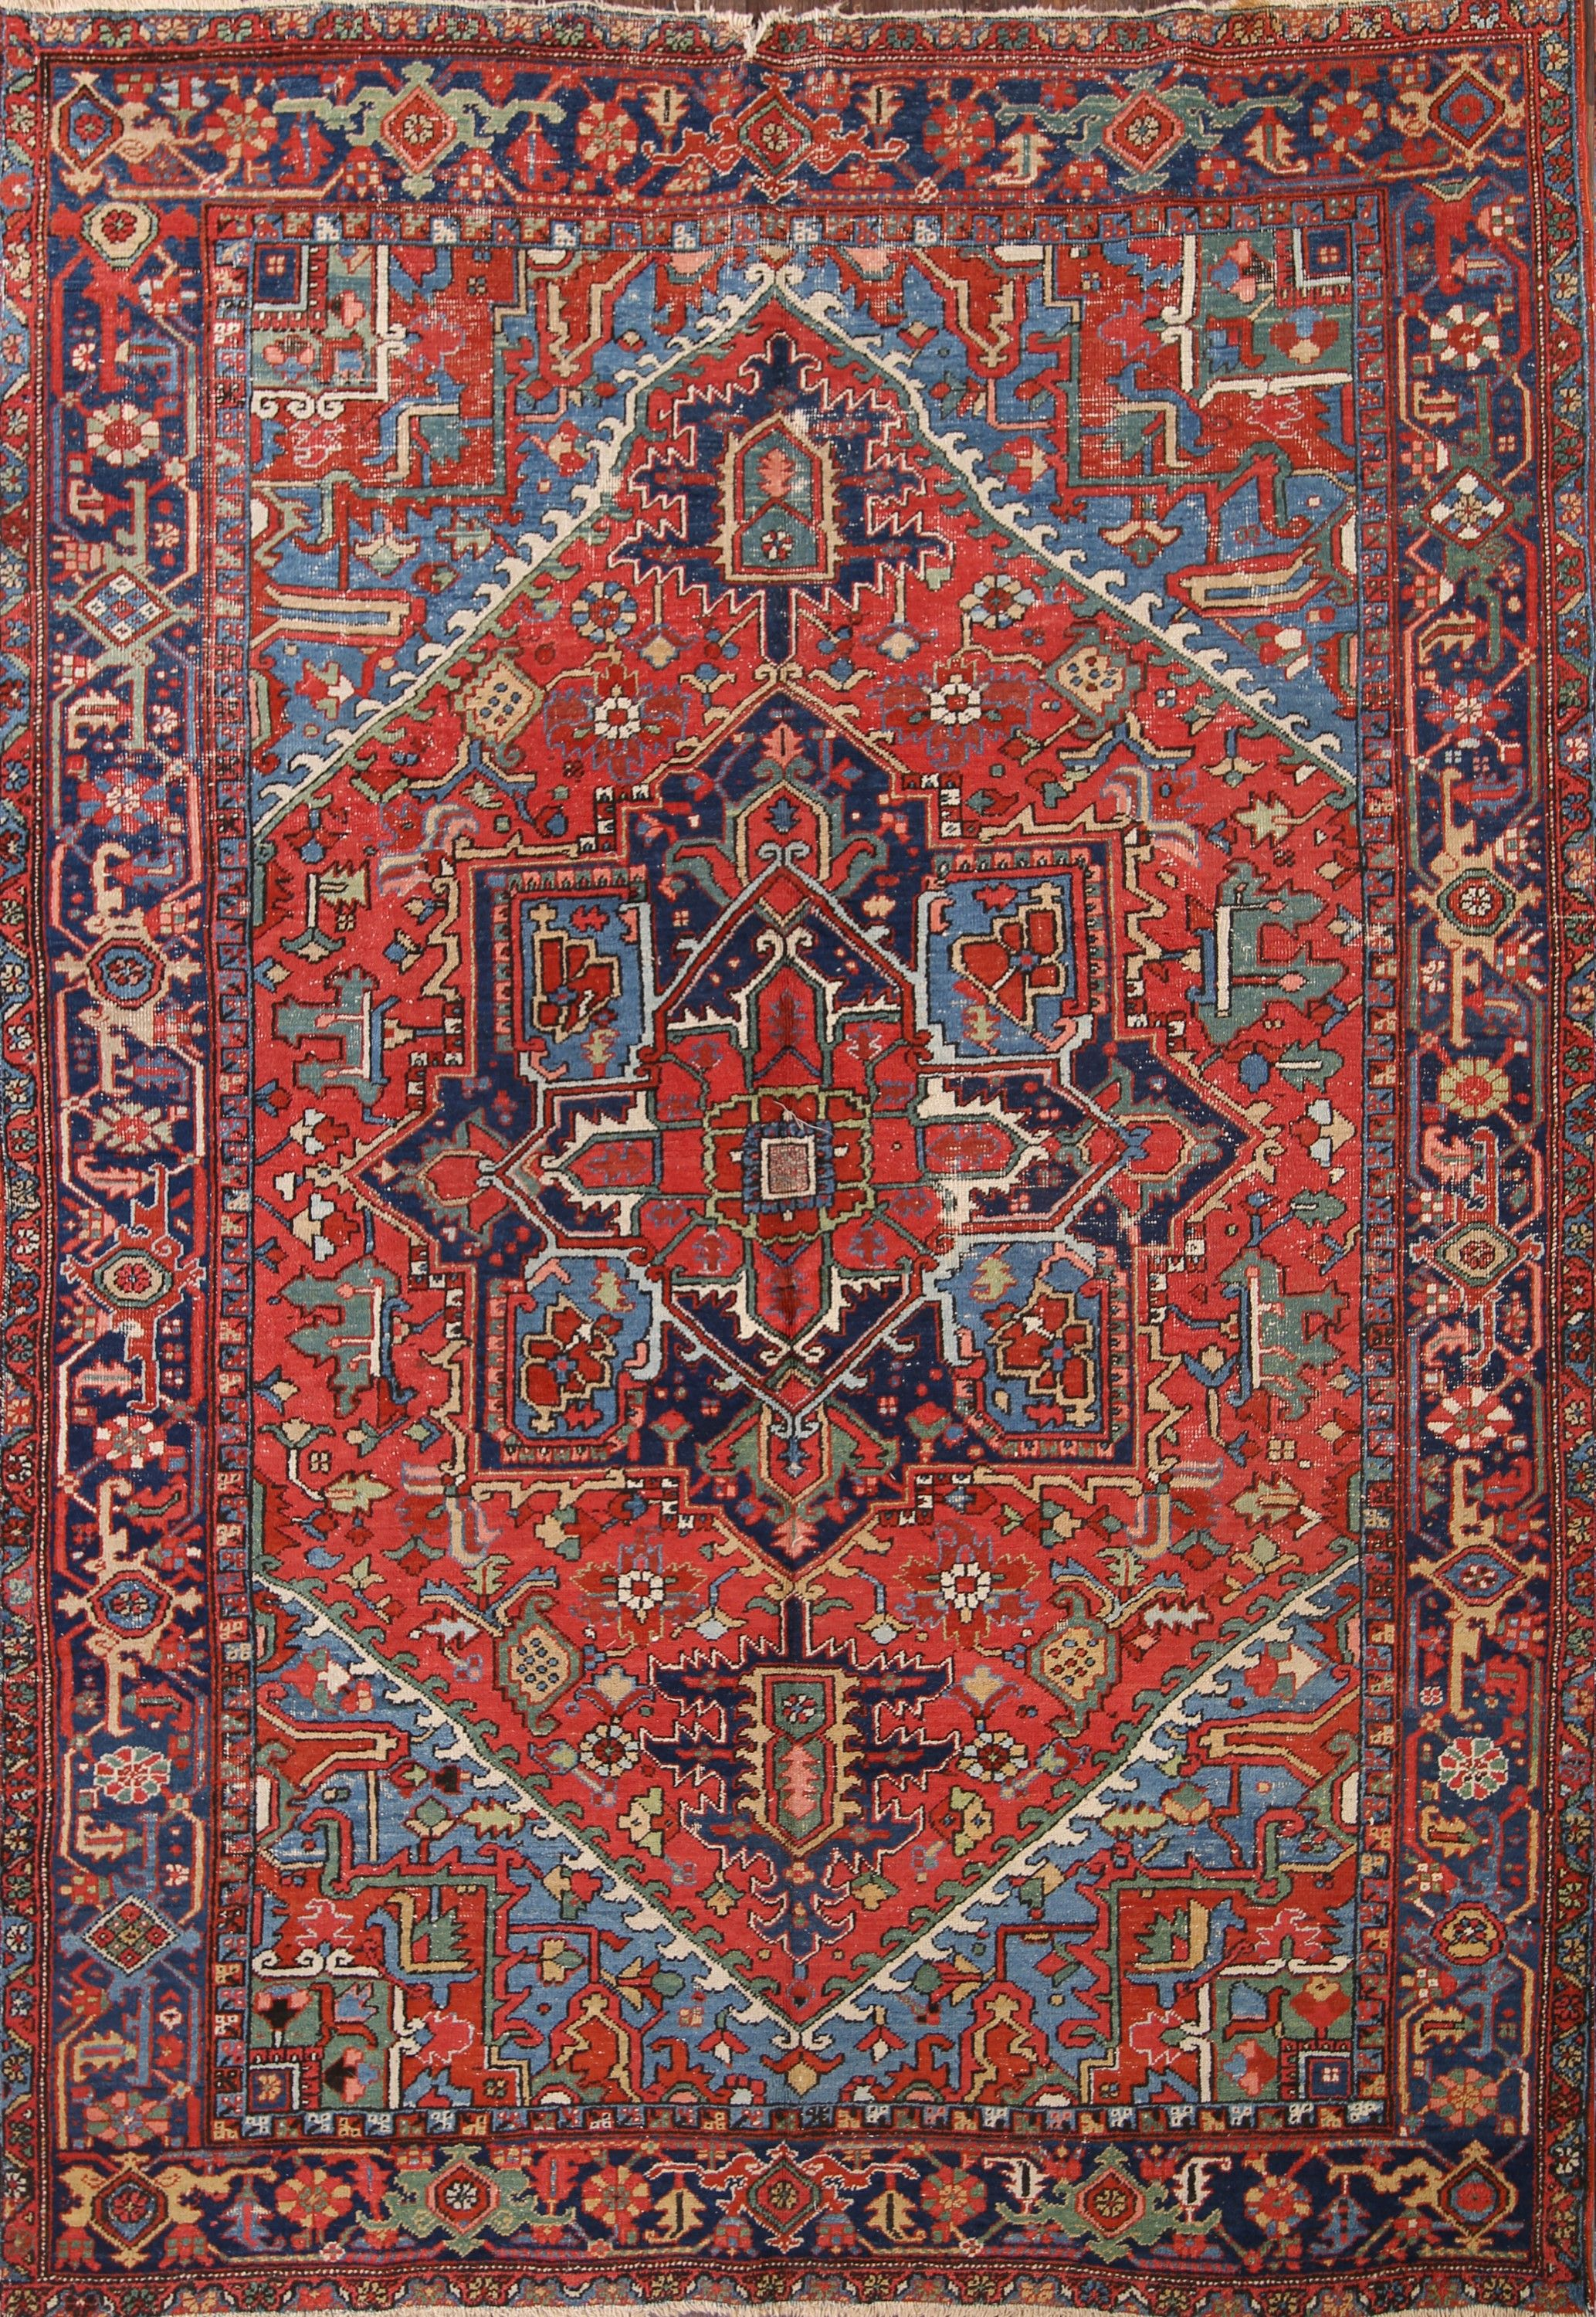 7x10 Heriz Serapi Persian Area Rug Online Unlimited Source Of Oriental And Antique Rugs